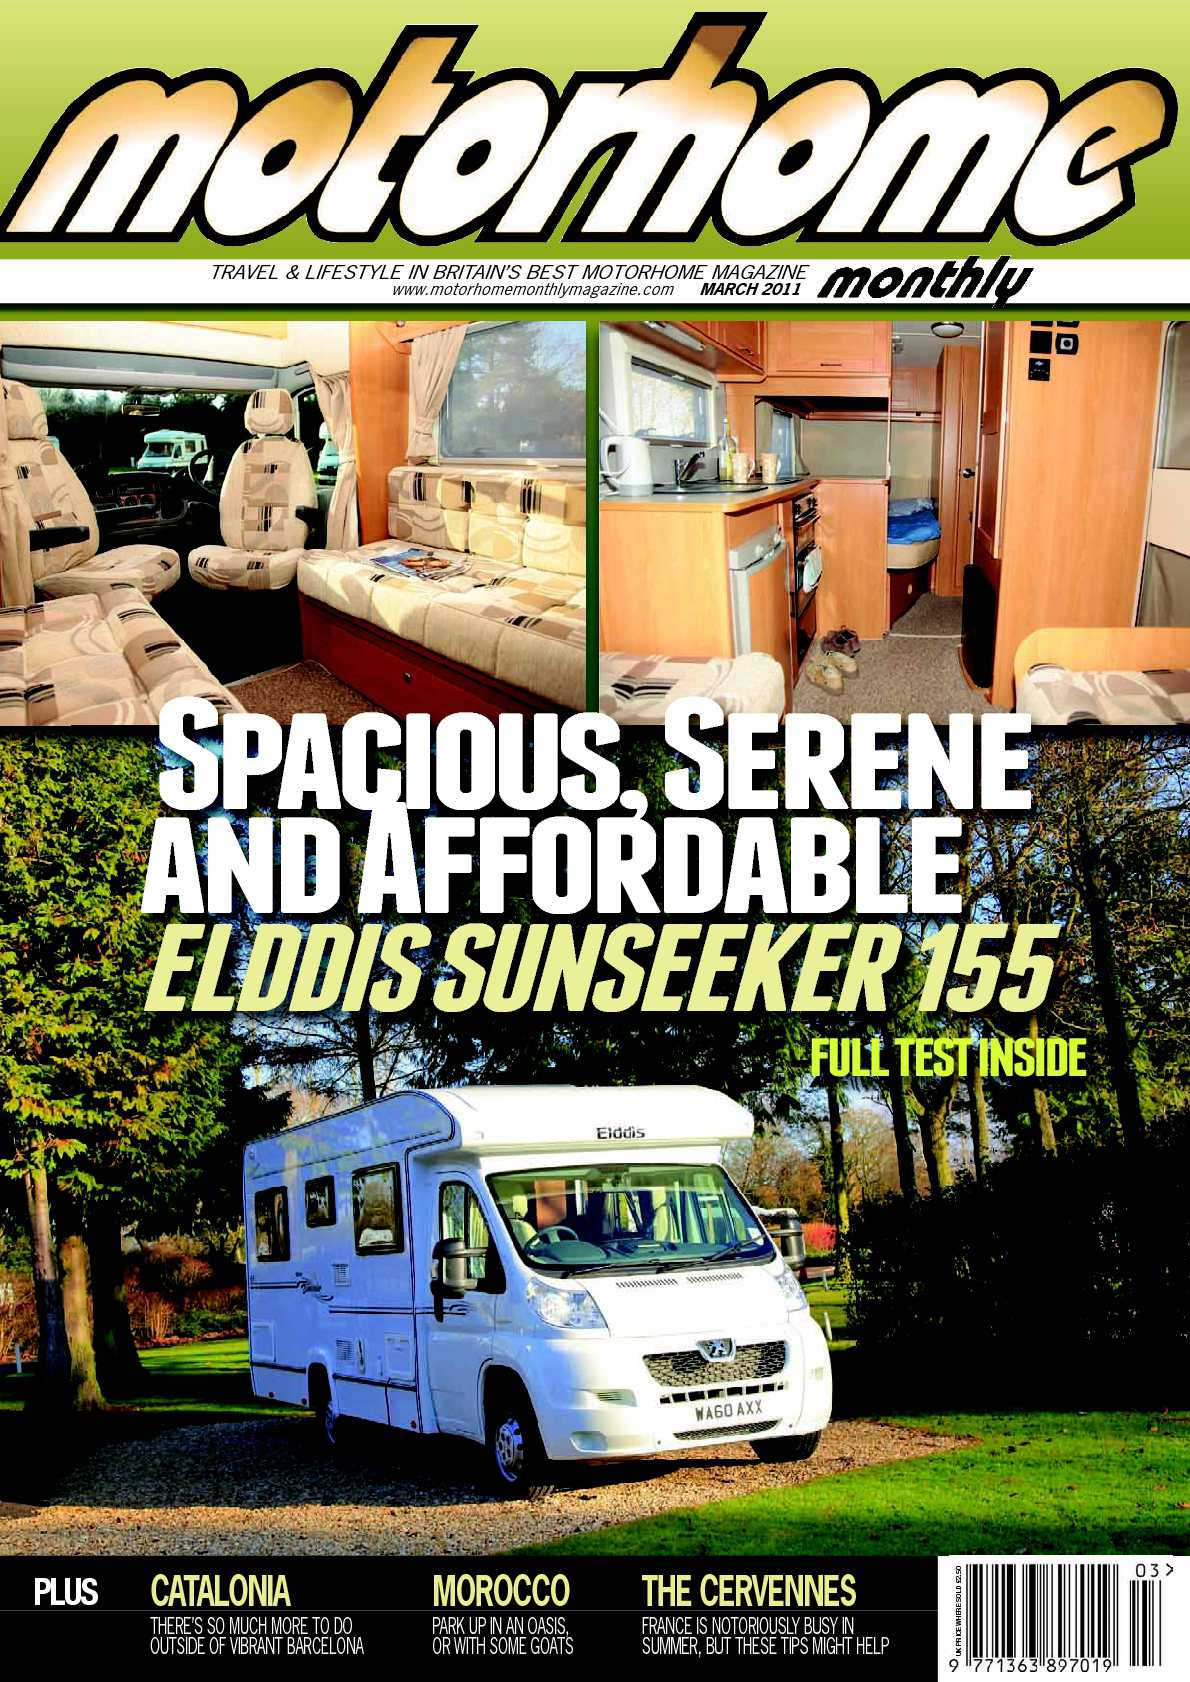 016eee49ad Calaméo - March 2011 - Motorhome Monthly Magazine